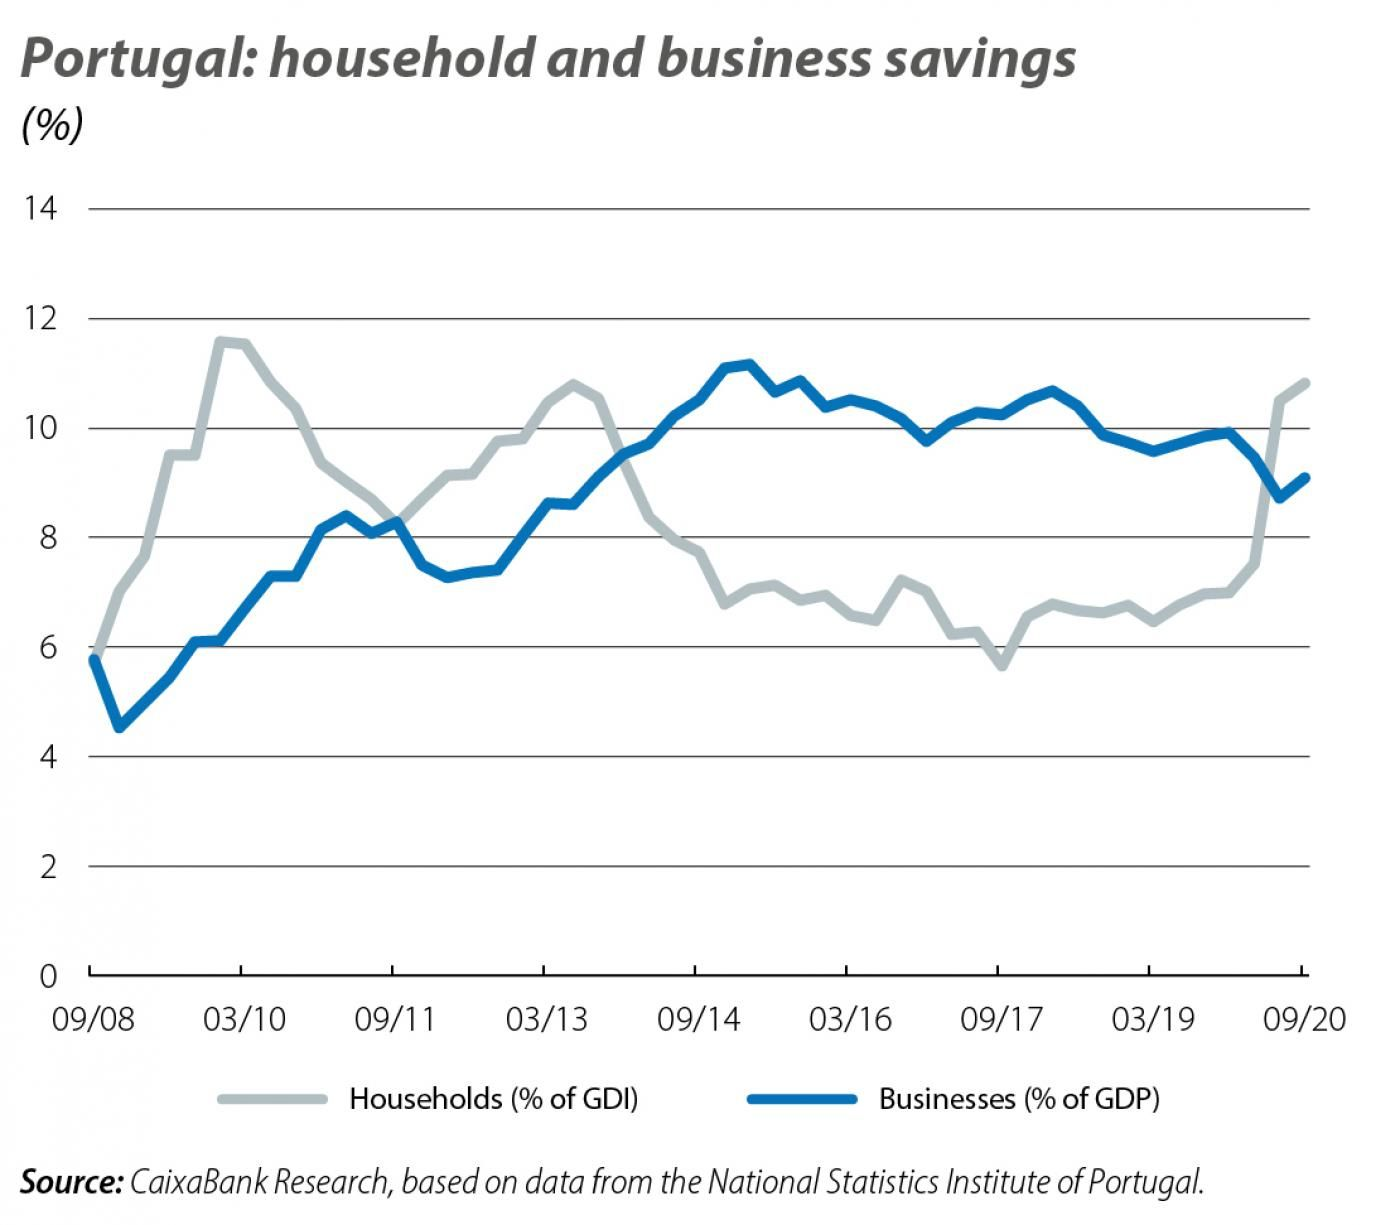 Portugal: household and business savings